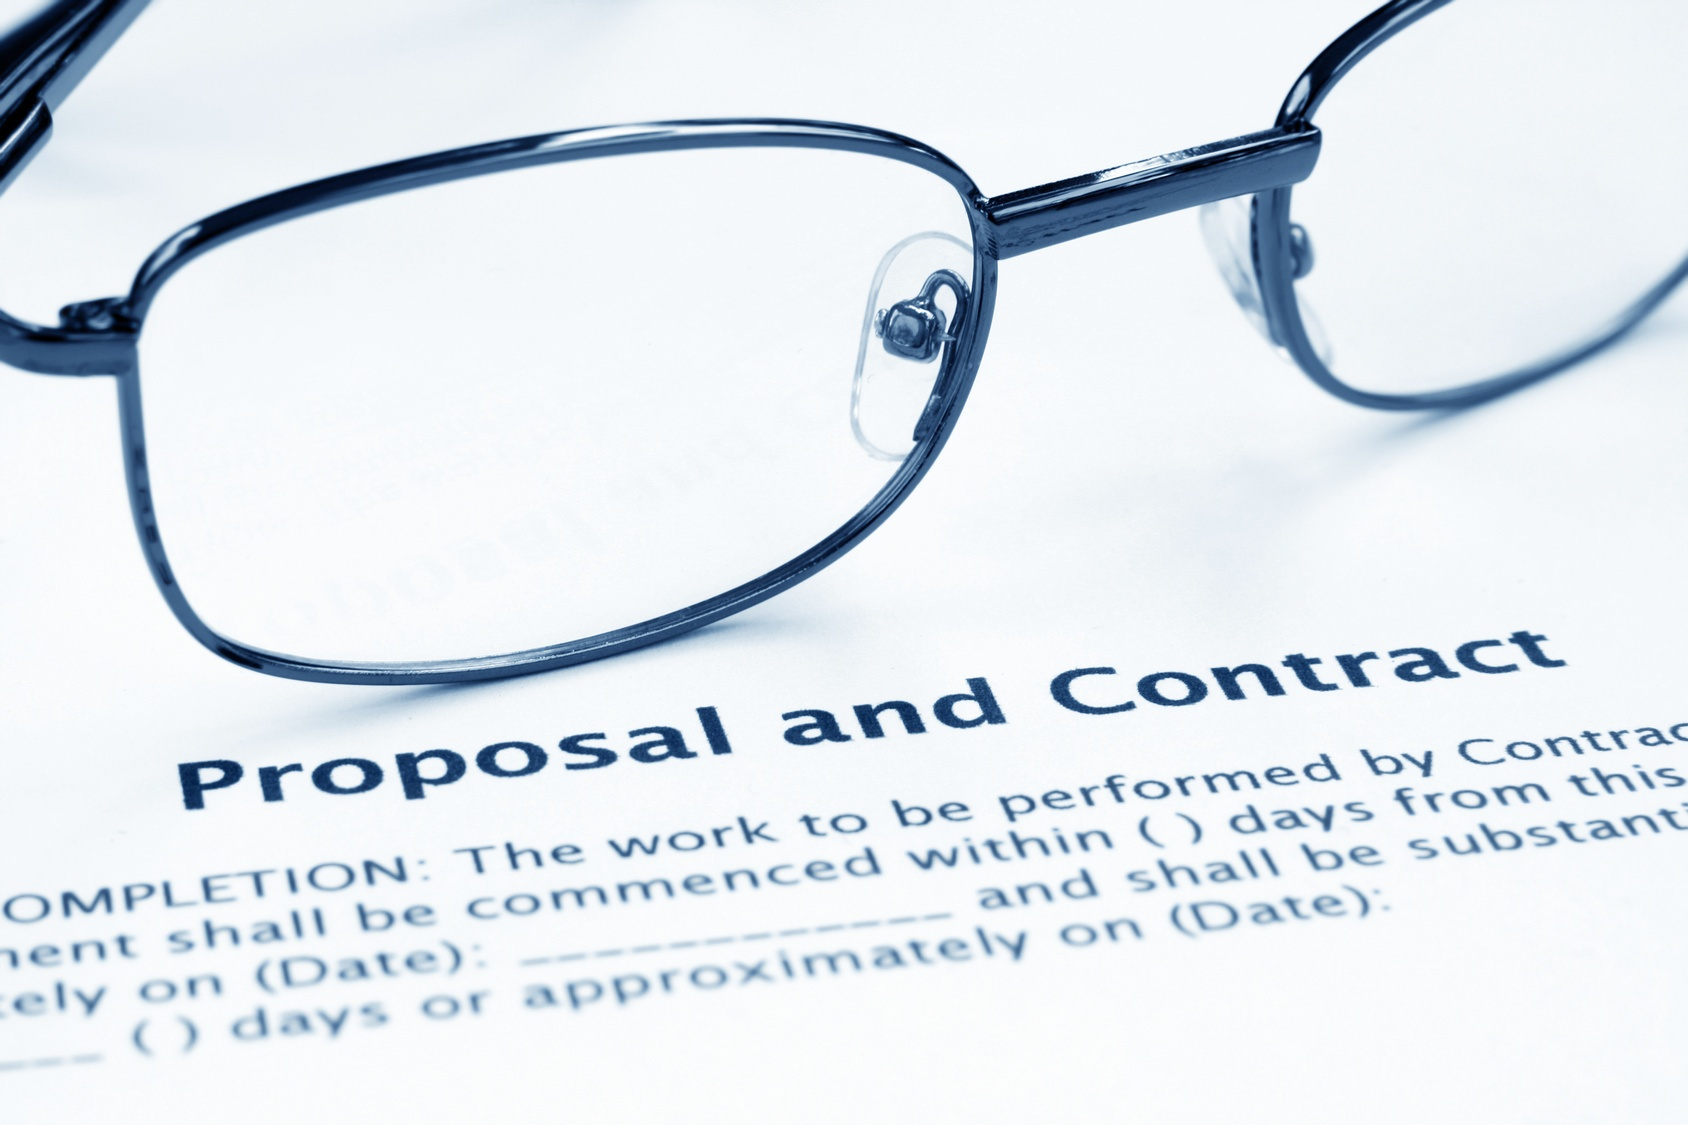 4 Steps to Responding to a Request For Proposal (RFP)